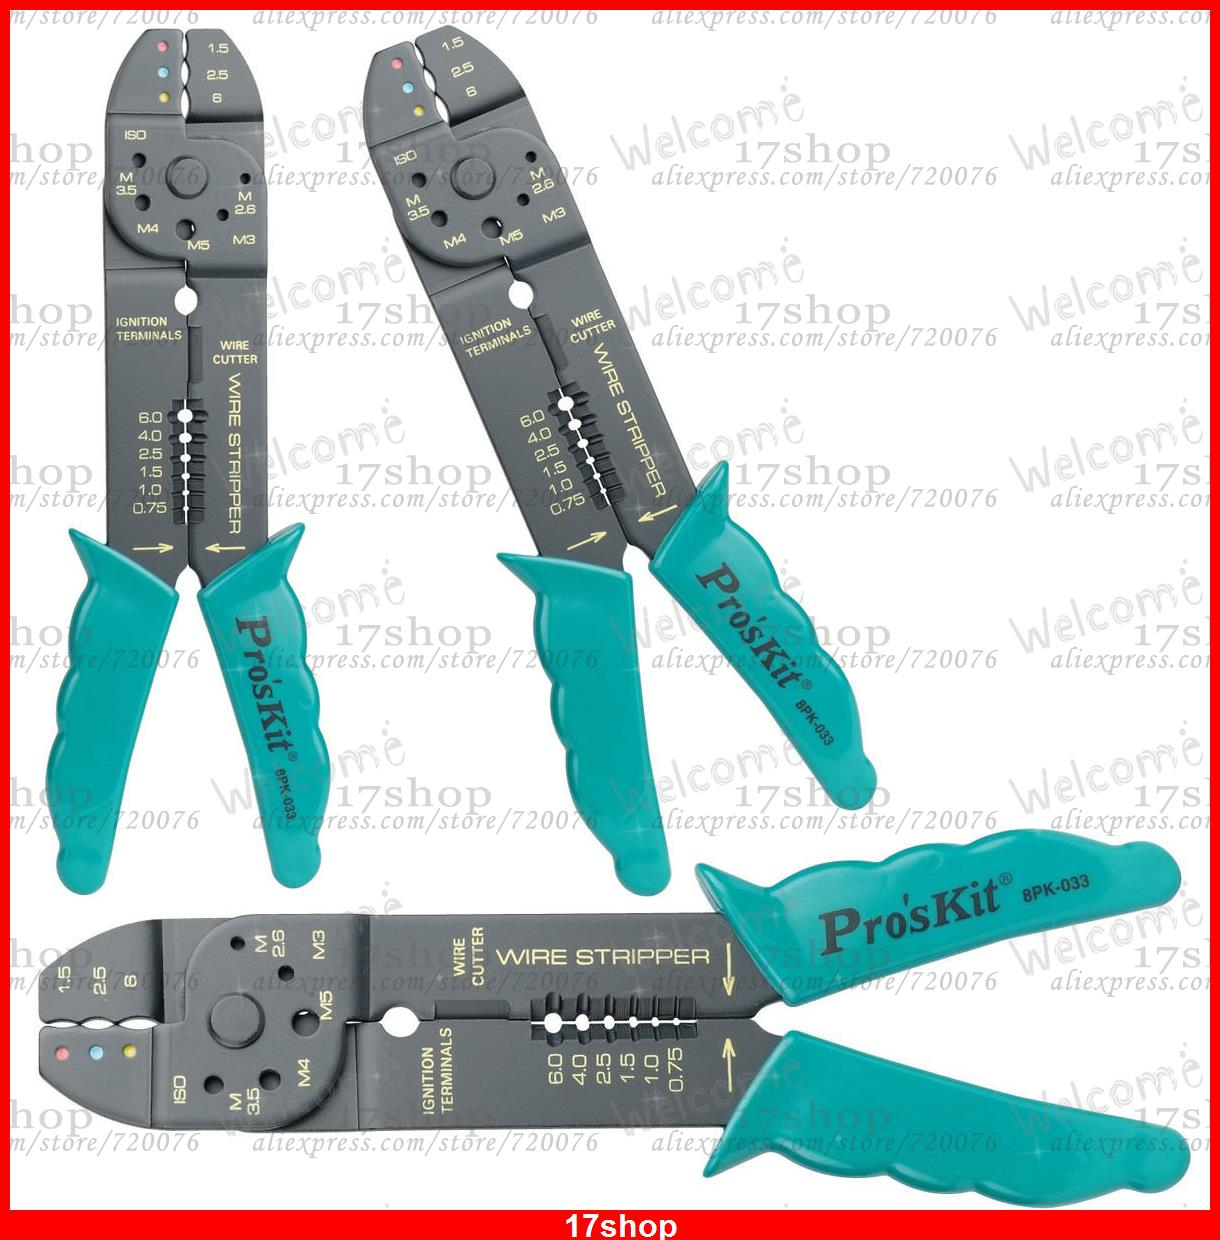 4 in 1 Crimpers multifunction pliers for Scissors Screw terminals Stripping 8PK-033  цены